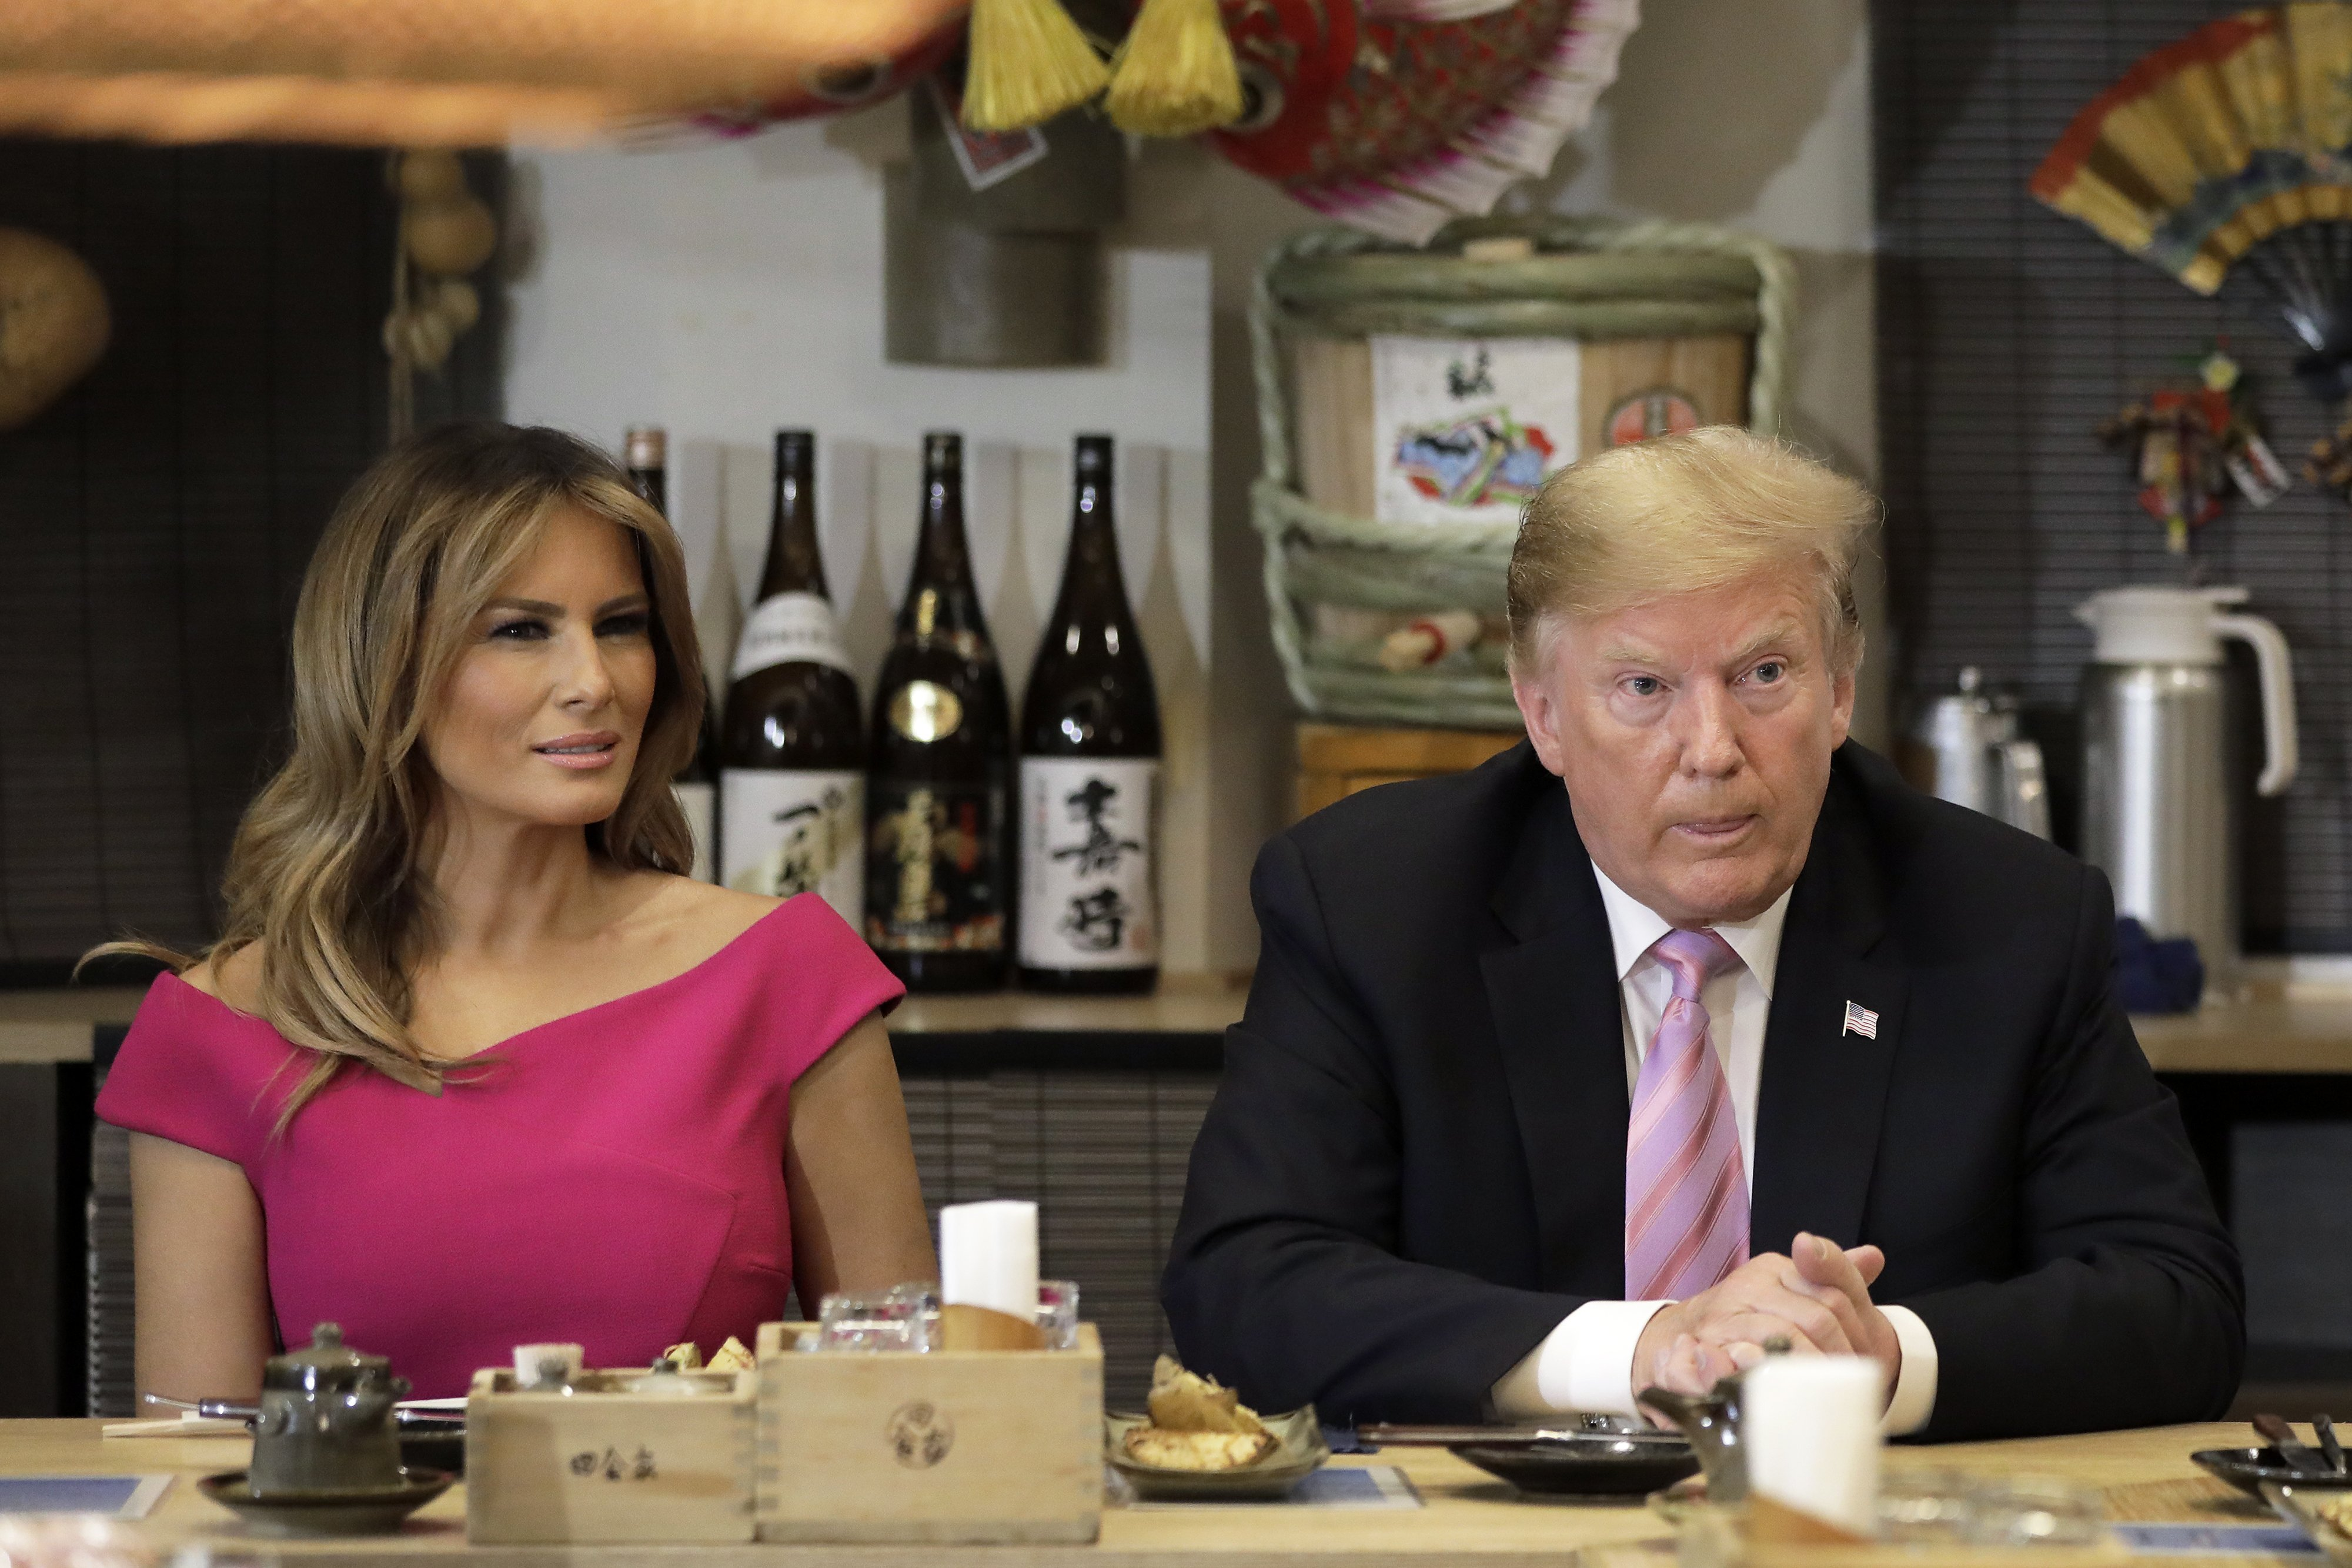 Donald Trump and Melania Trump at the Inakaya restaurant in Tokyo, Japan | Photo: Getty Images